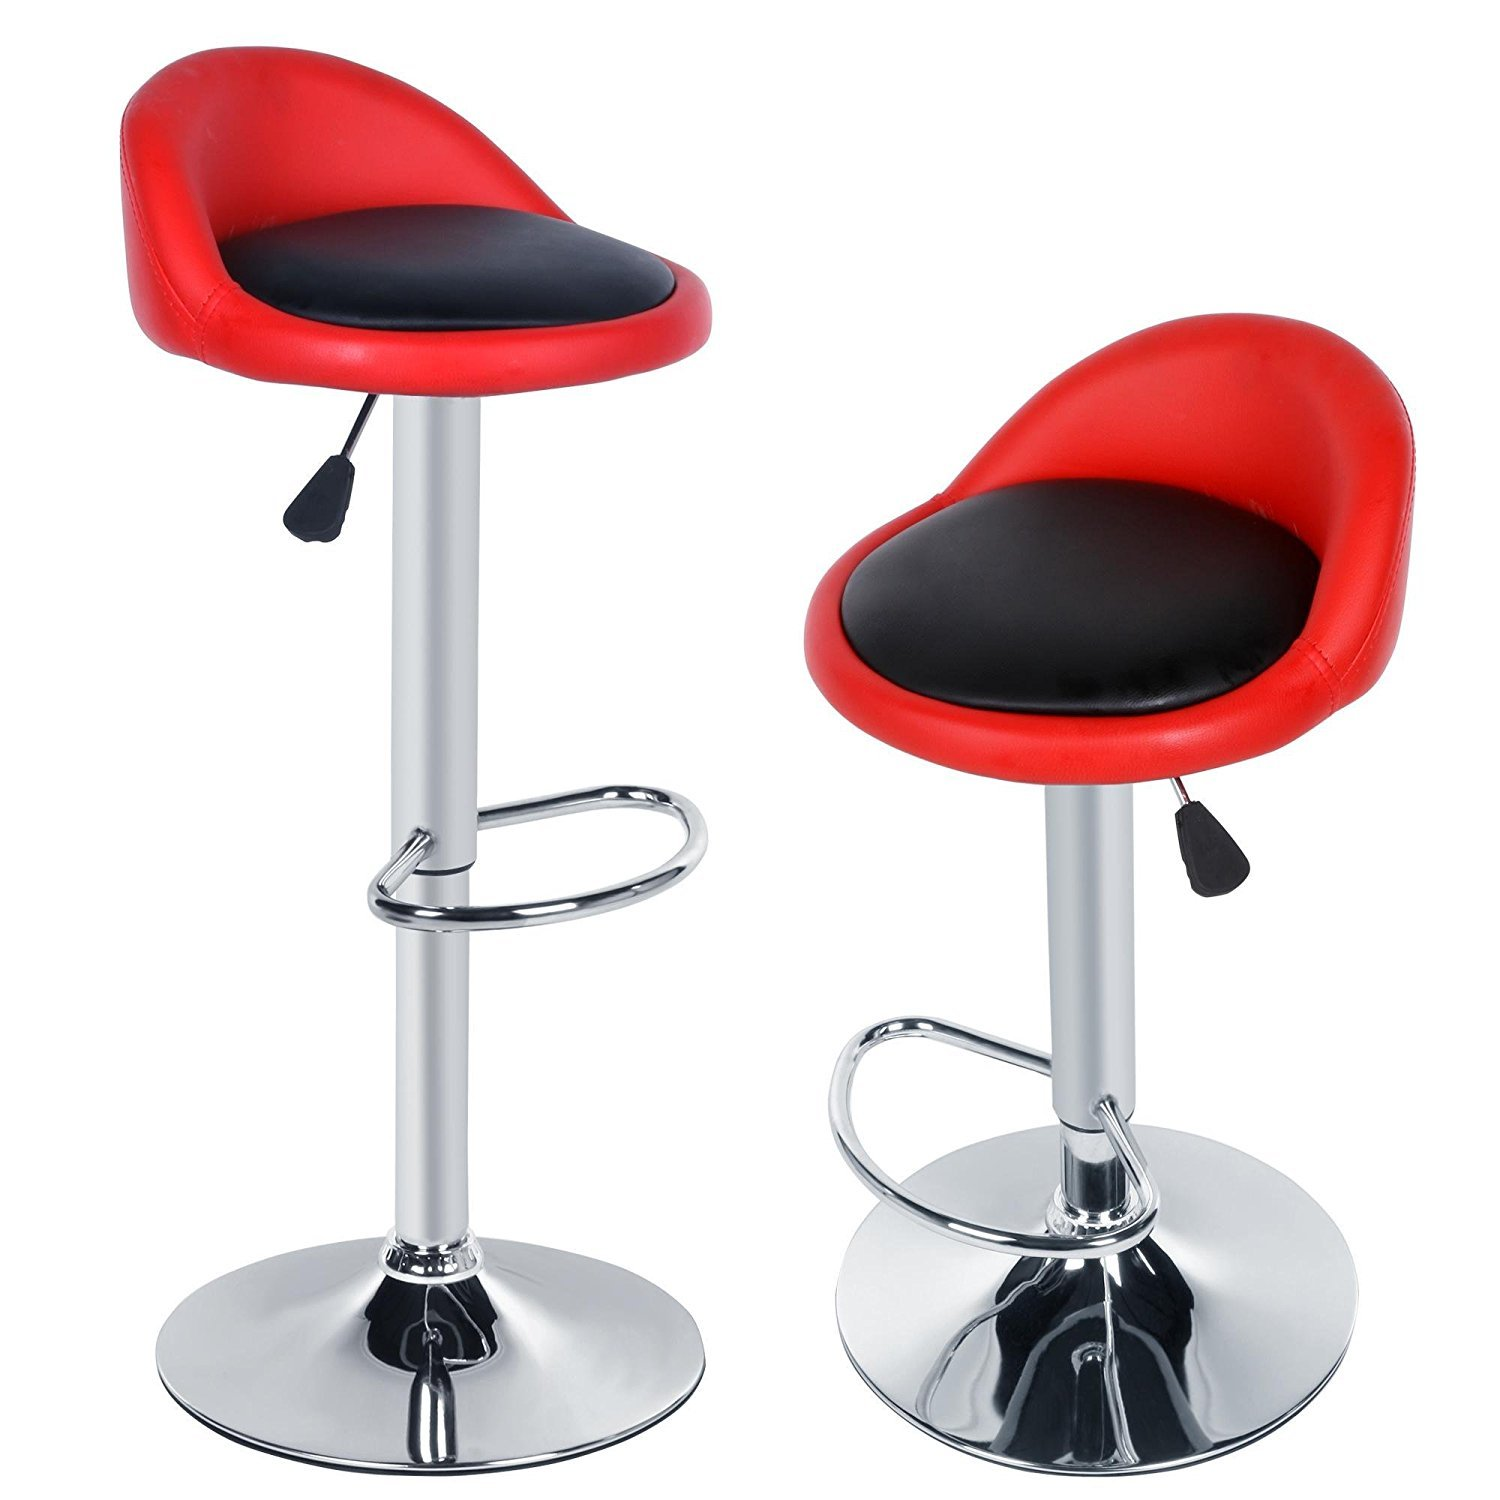 New Bar Chairs 2pcs Synthetic Leather Adjustable Rotating Height Bar Stool Chair for Home, Kitchen, Office US STOCK (Red Black)